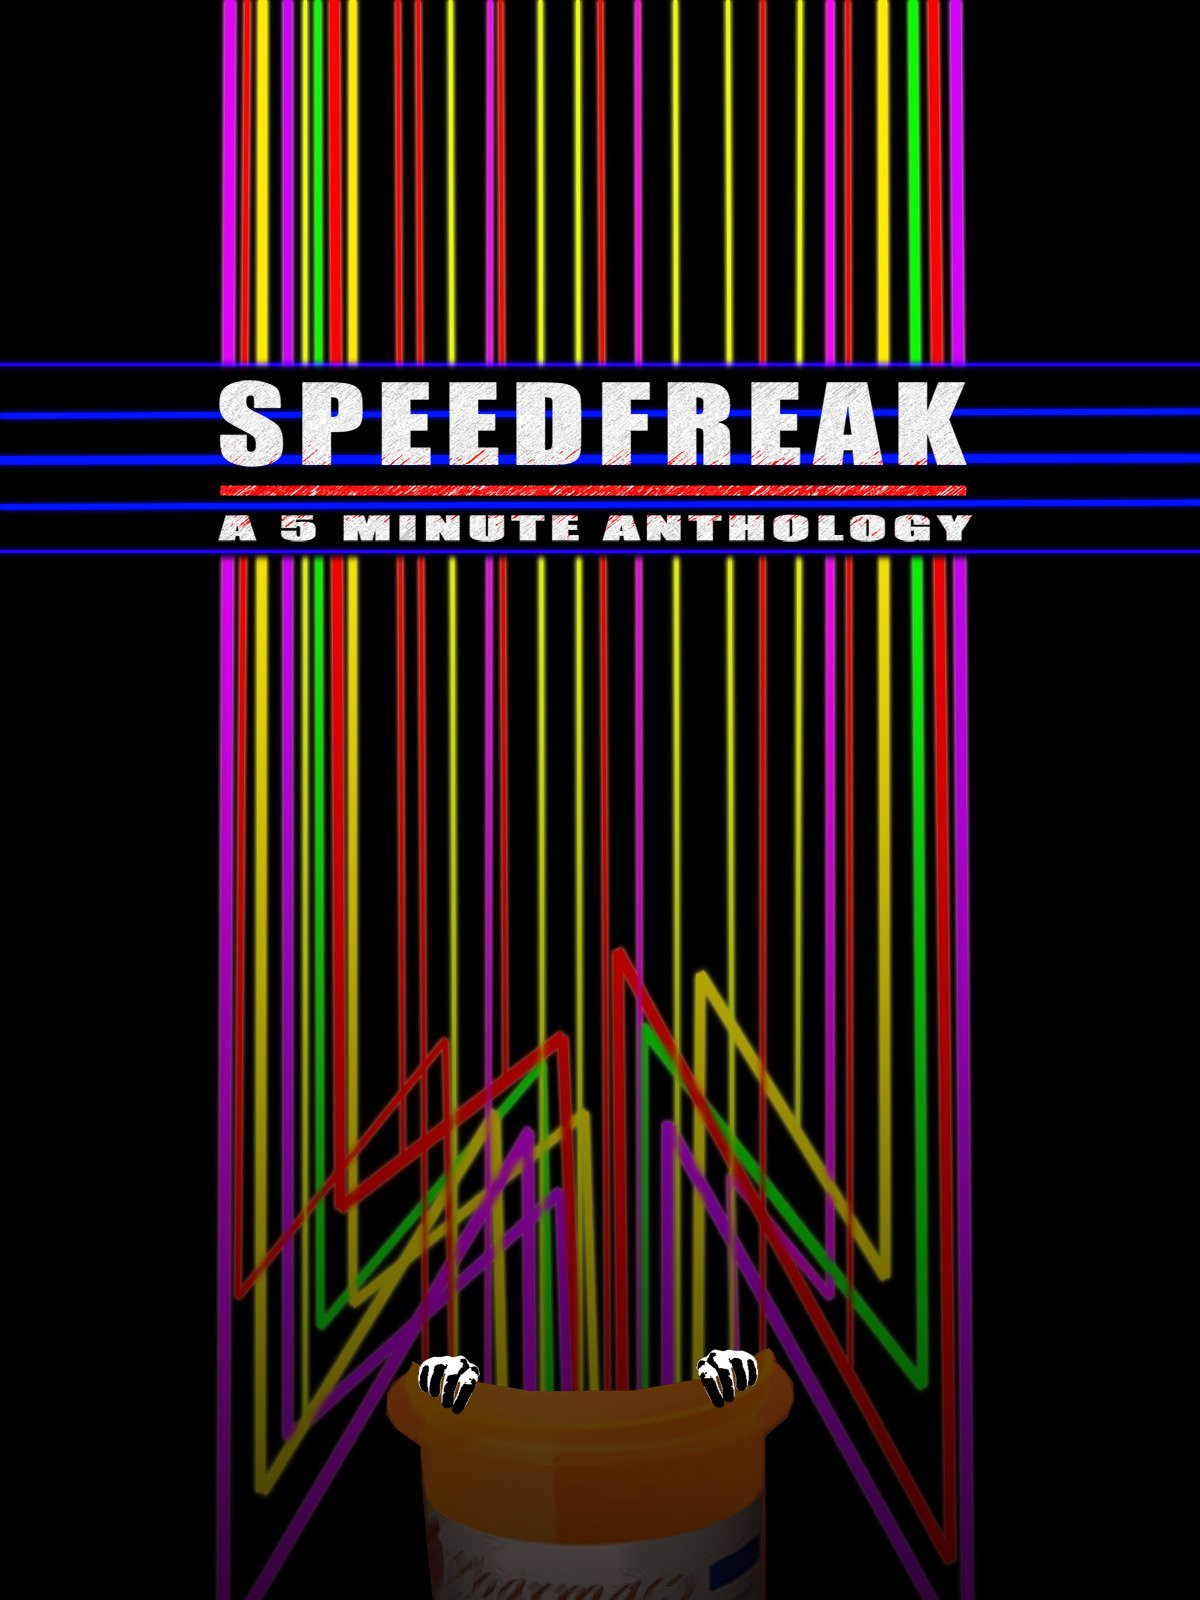 Speedfreak: A 5 Minute Antholgy on Amazon Prime Video UK